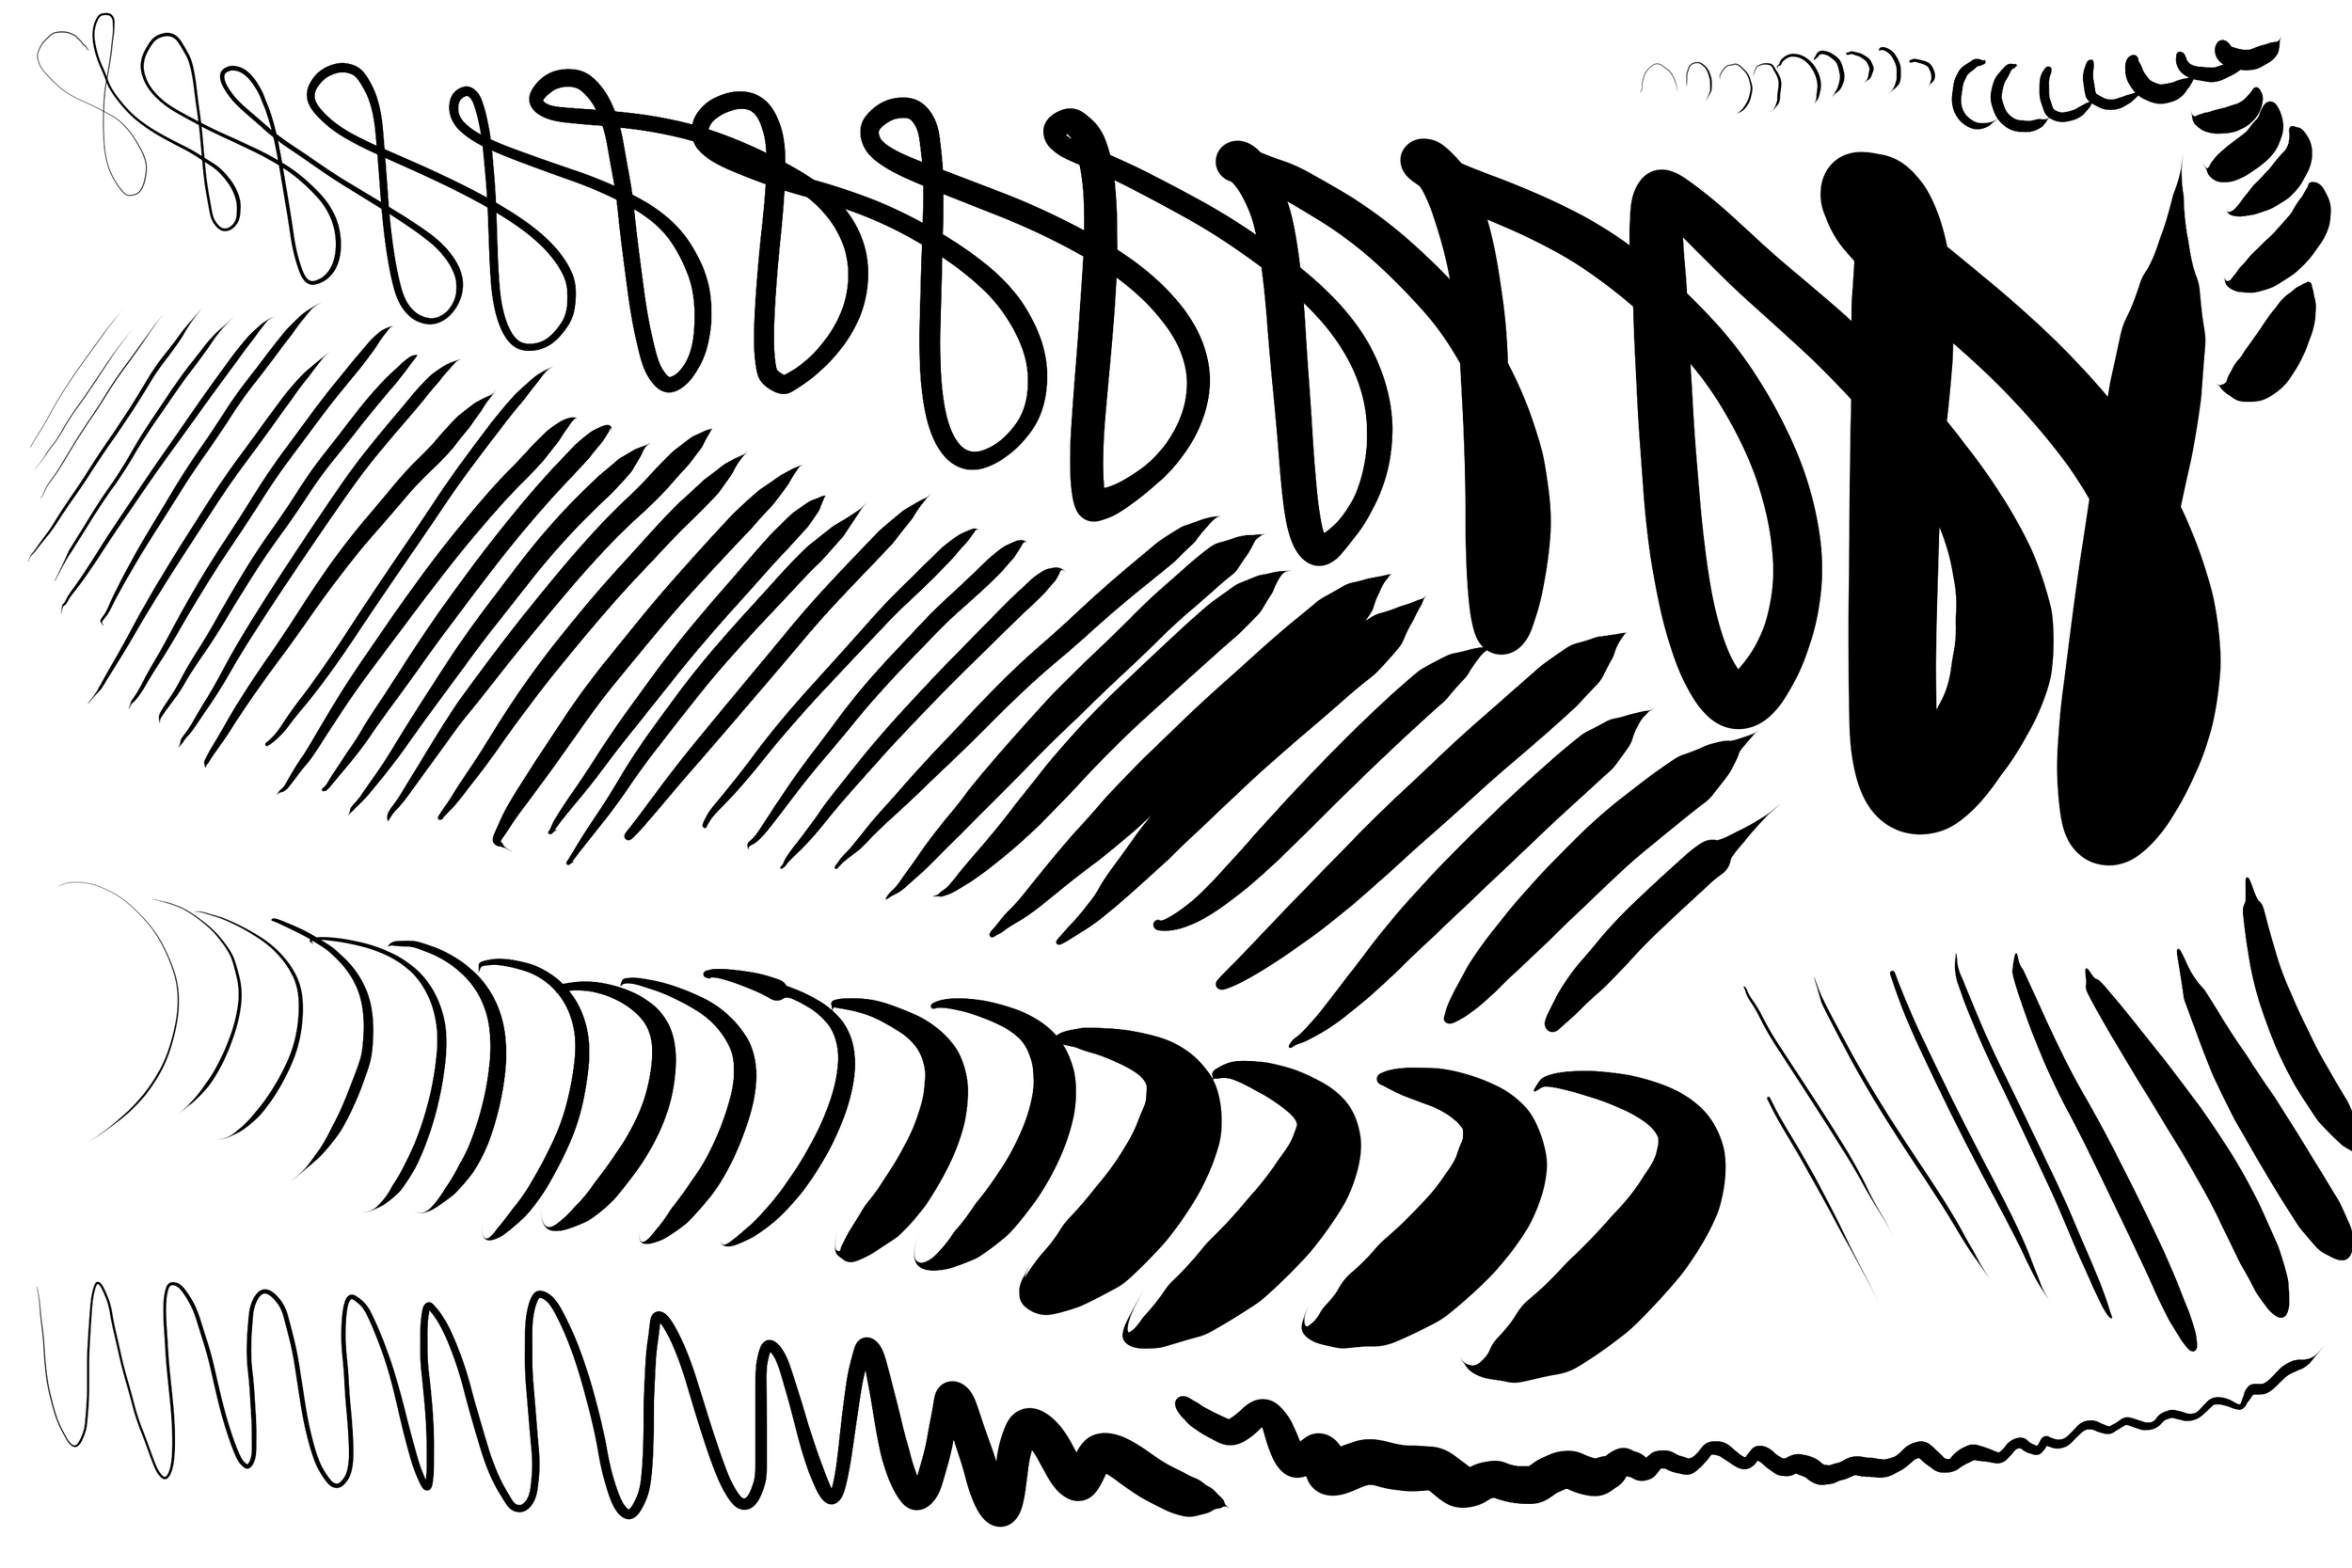 "These tests demonstrate the pressure range I was able to achieve in Clip Studio Paint 1.3.1 with a 200px Frenden brush on a 10""x10"" image at 300 dpi. I adjusted the slope of the pen pressure curve to have a much slower acceleration. The default linear curve requires too much initial force, which makes it nearly impossible for me to register light marks."